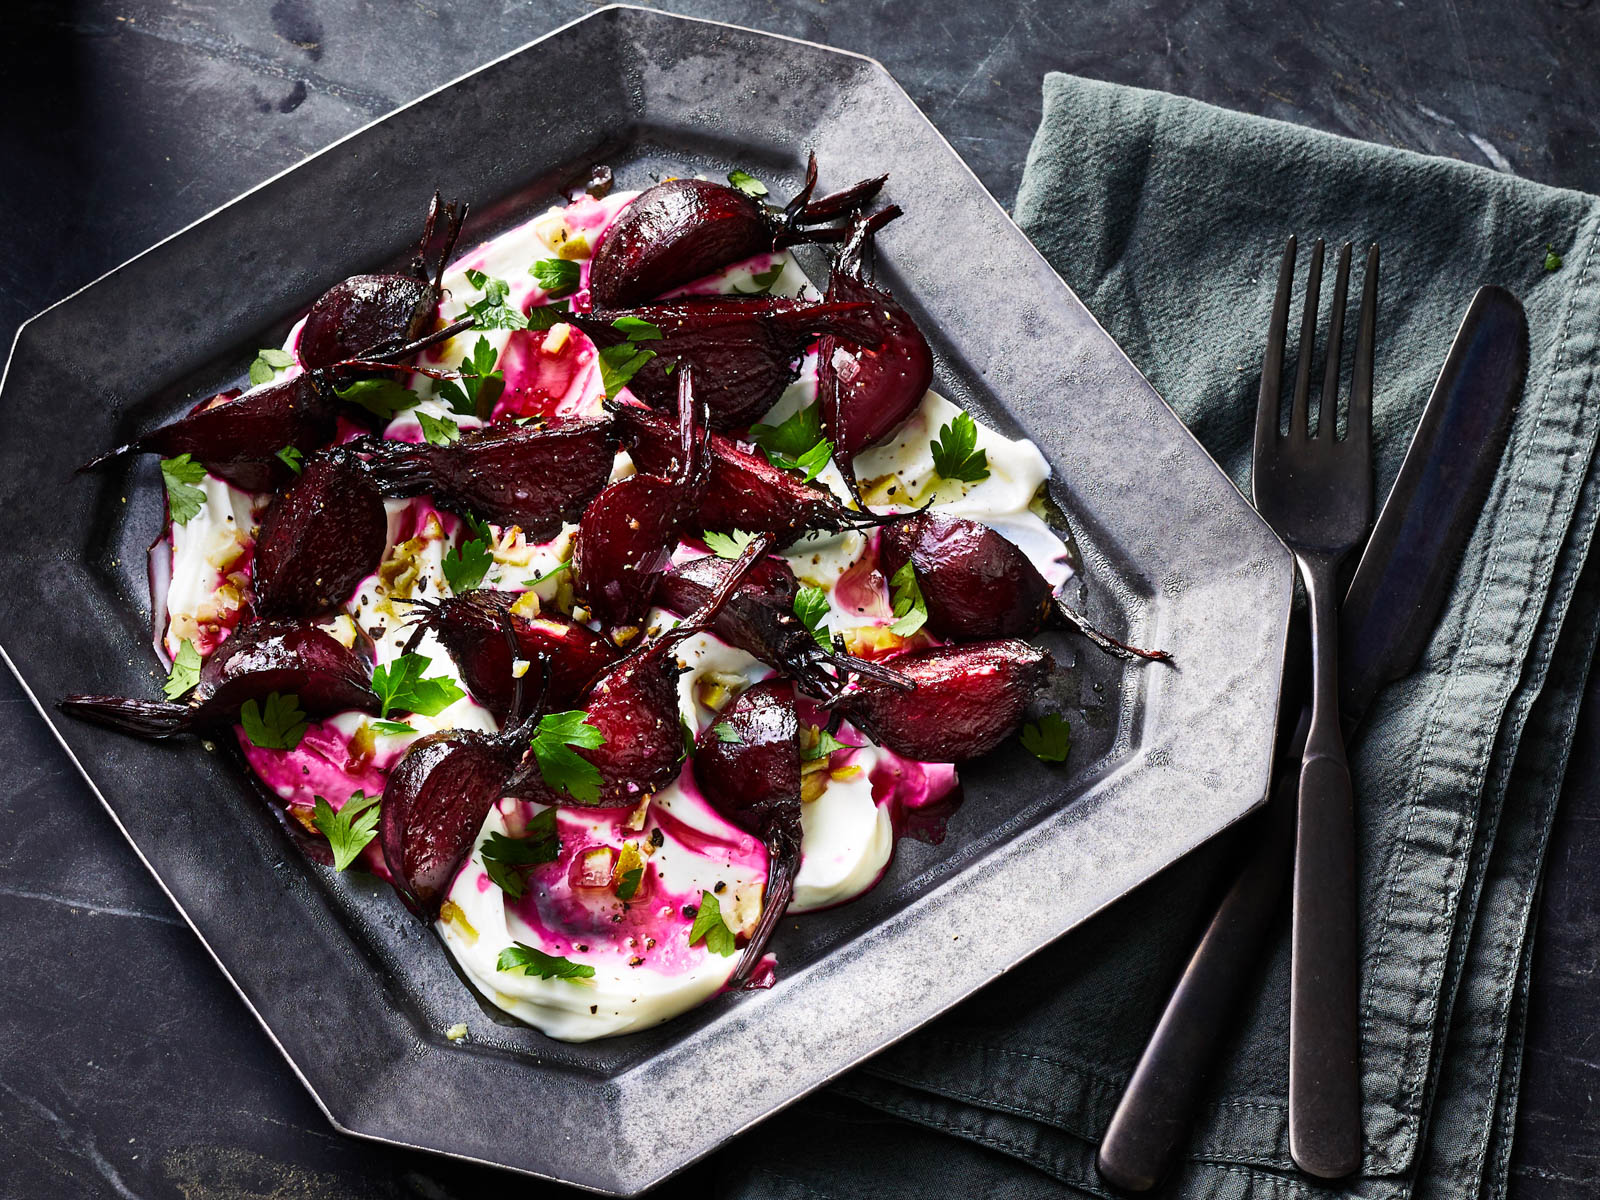 Beet Salad with Preserved Limes Recipe